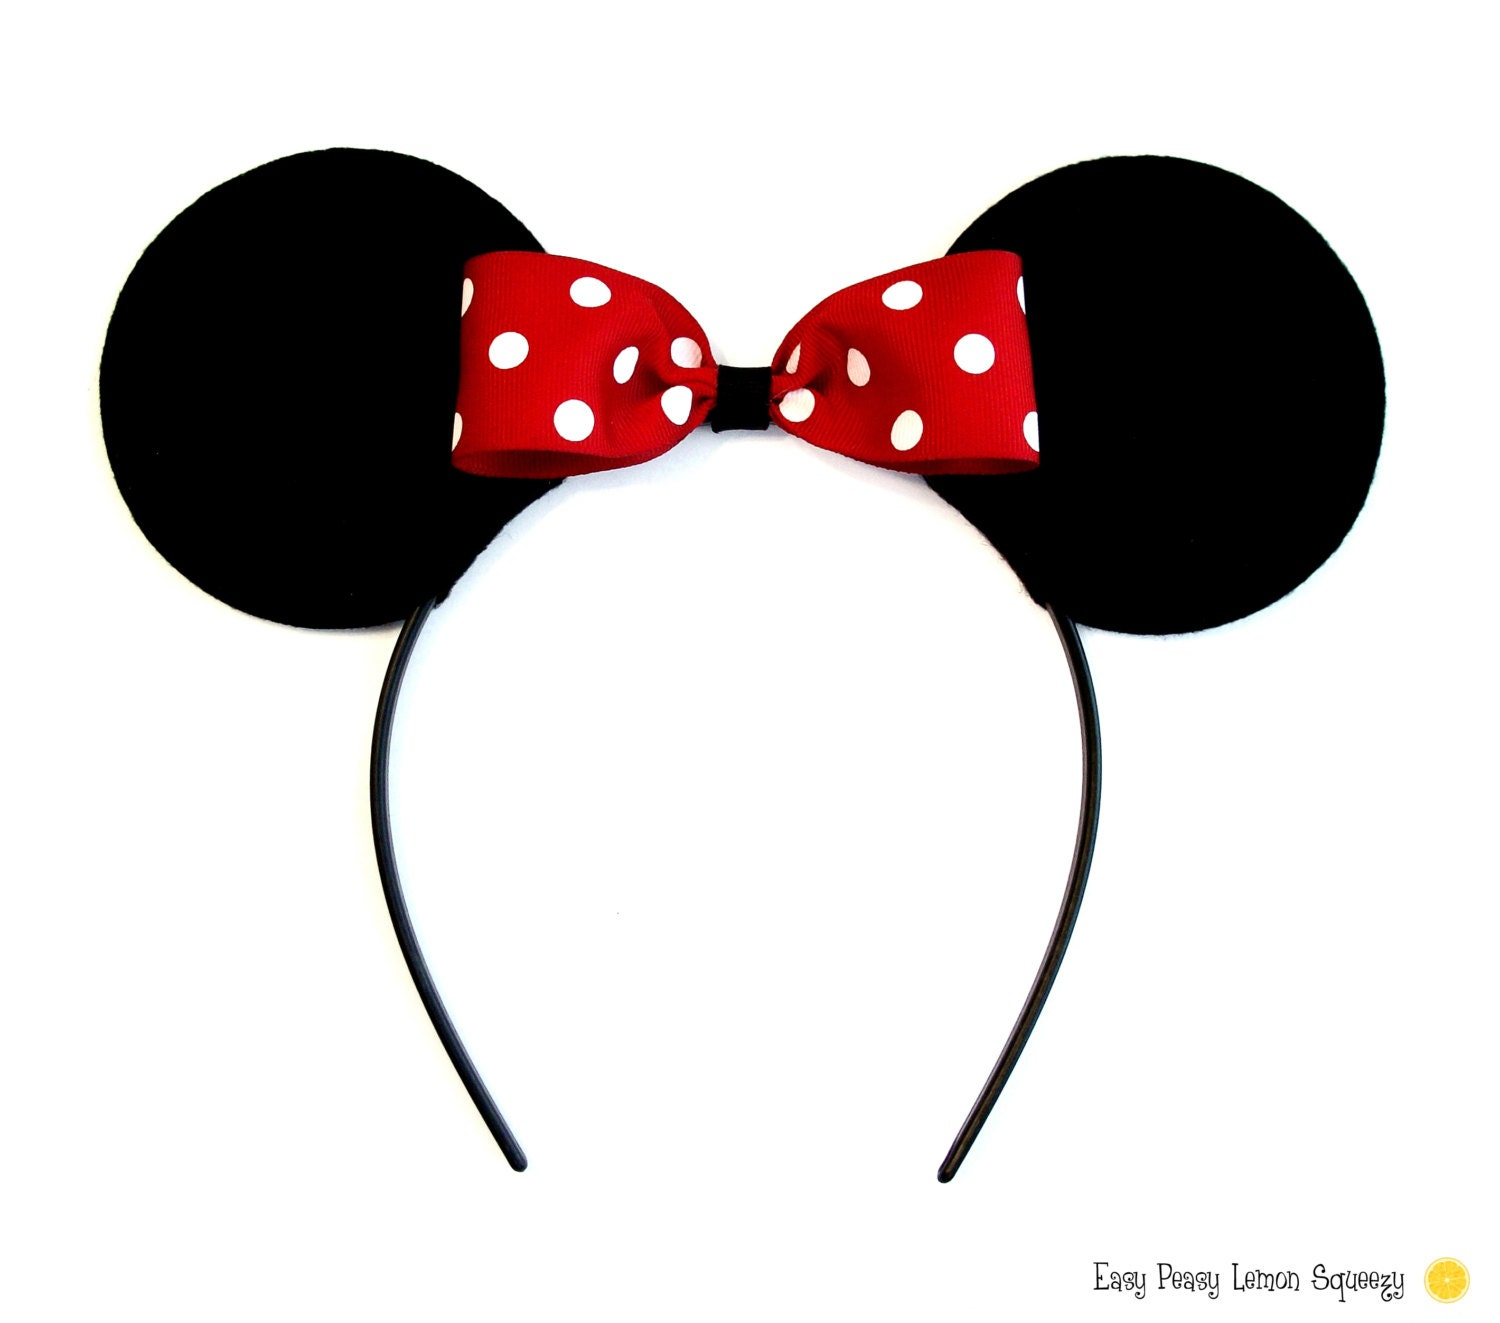 template for minnie mouse ears - deluxe minnie mouse ear headbands by easypeasylemon on etsy